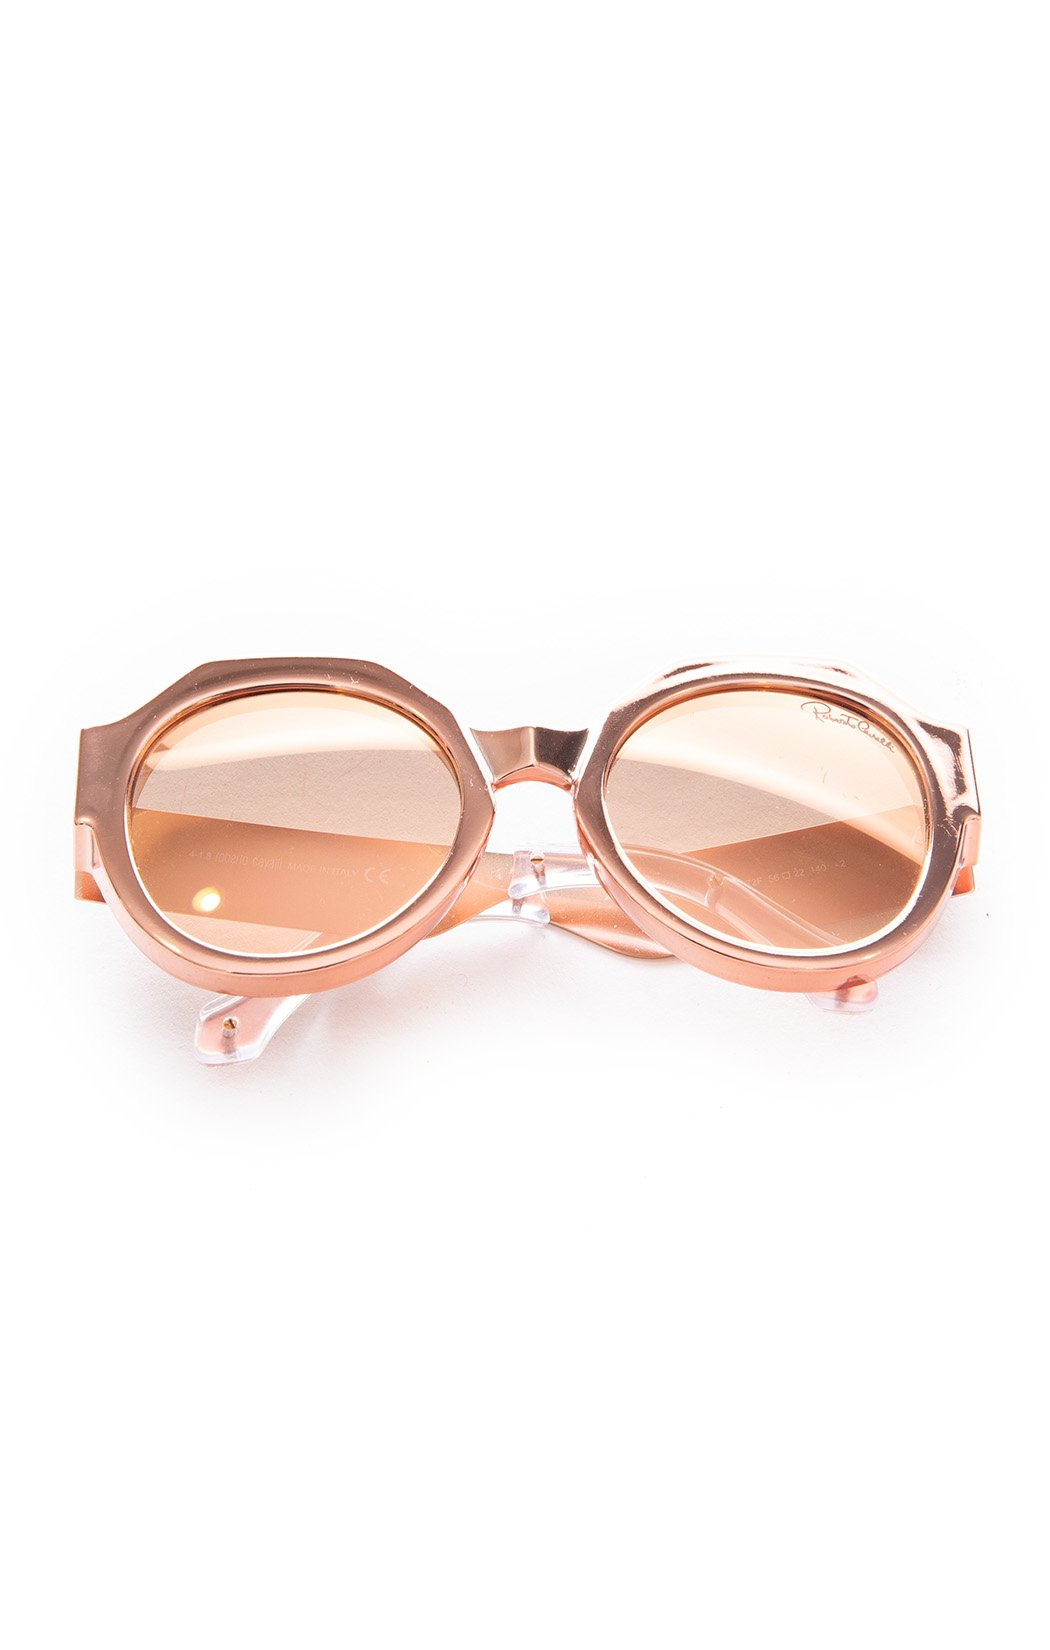 "Front view of ROBERTO CAVALLI with case Sunglasses  Size: 2.5"" H x 6"" W x 1/3"" D"